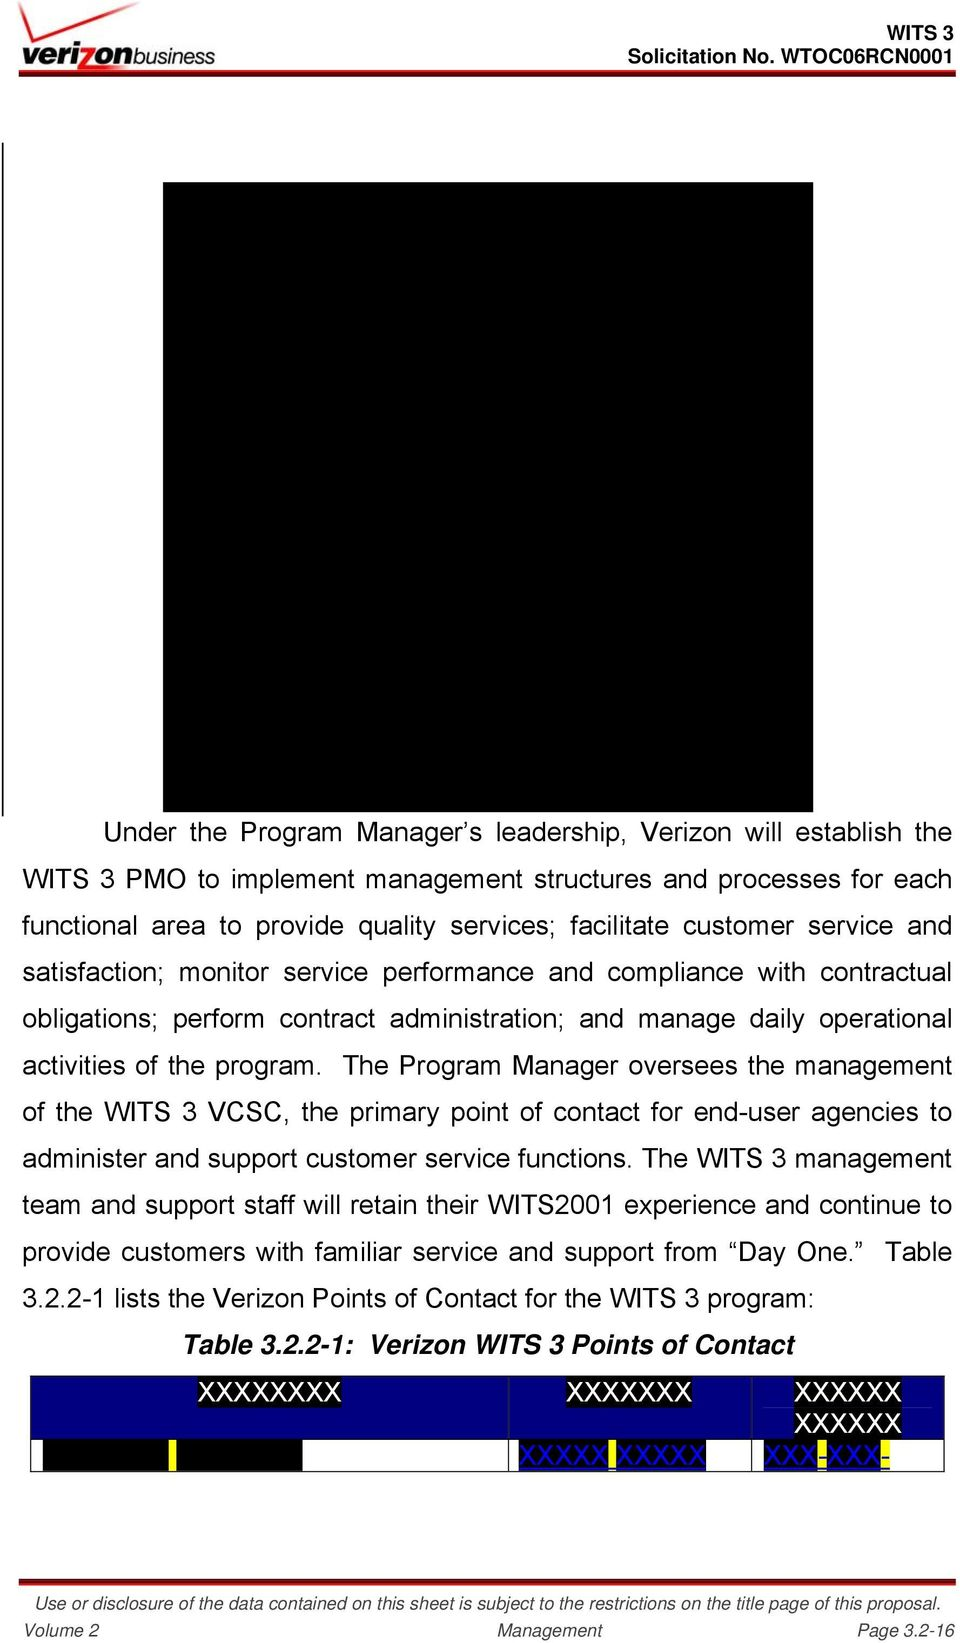 The Program Manager oversees the management of the WITS 3 VCSC, the primary point of contact for end-user agencies to administer and support customer service functions.